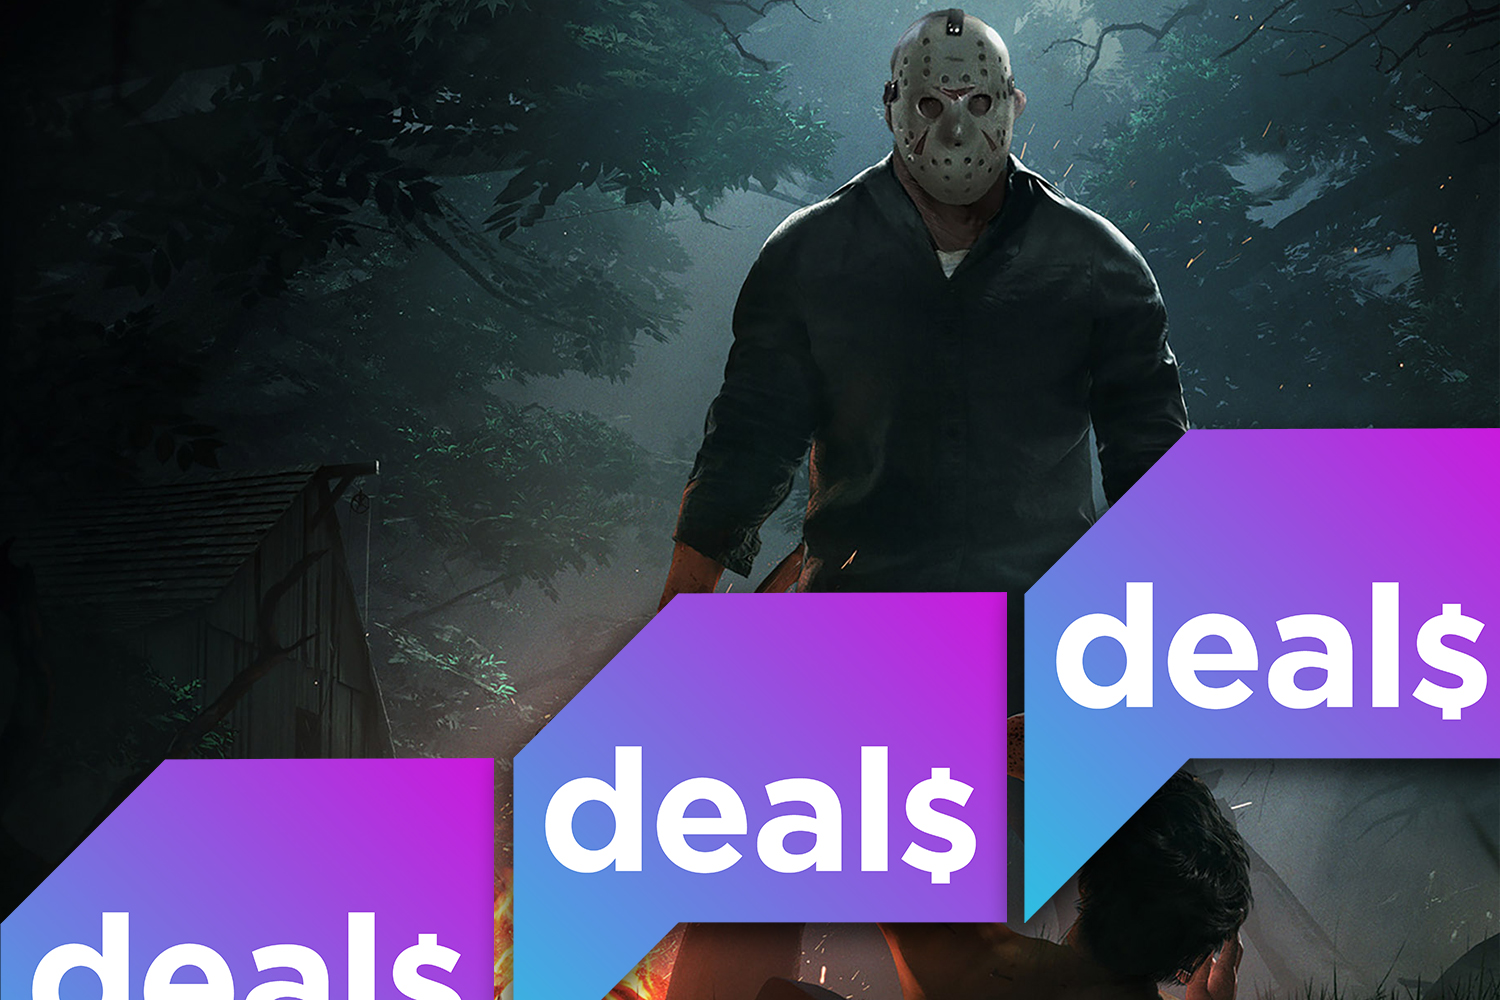 Promotional image from Friday the 13th: The Game overlaid with the Polygon Deals logo